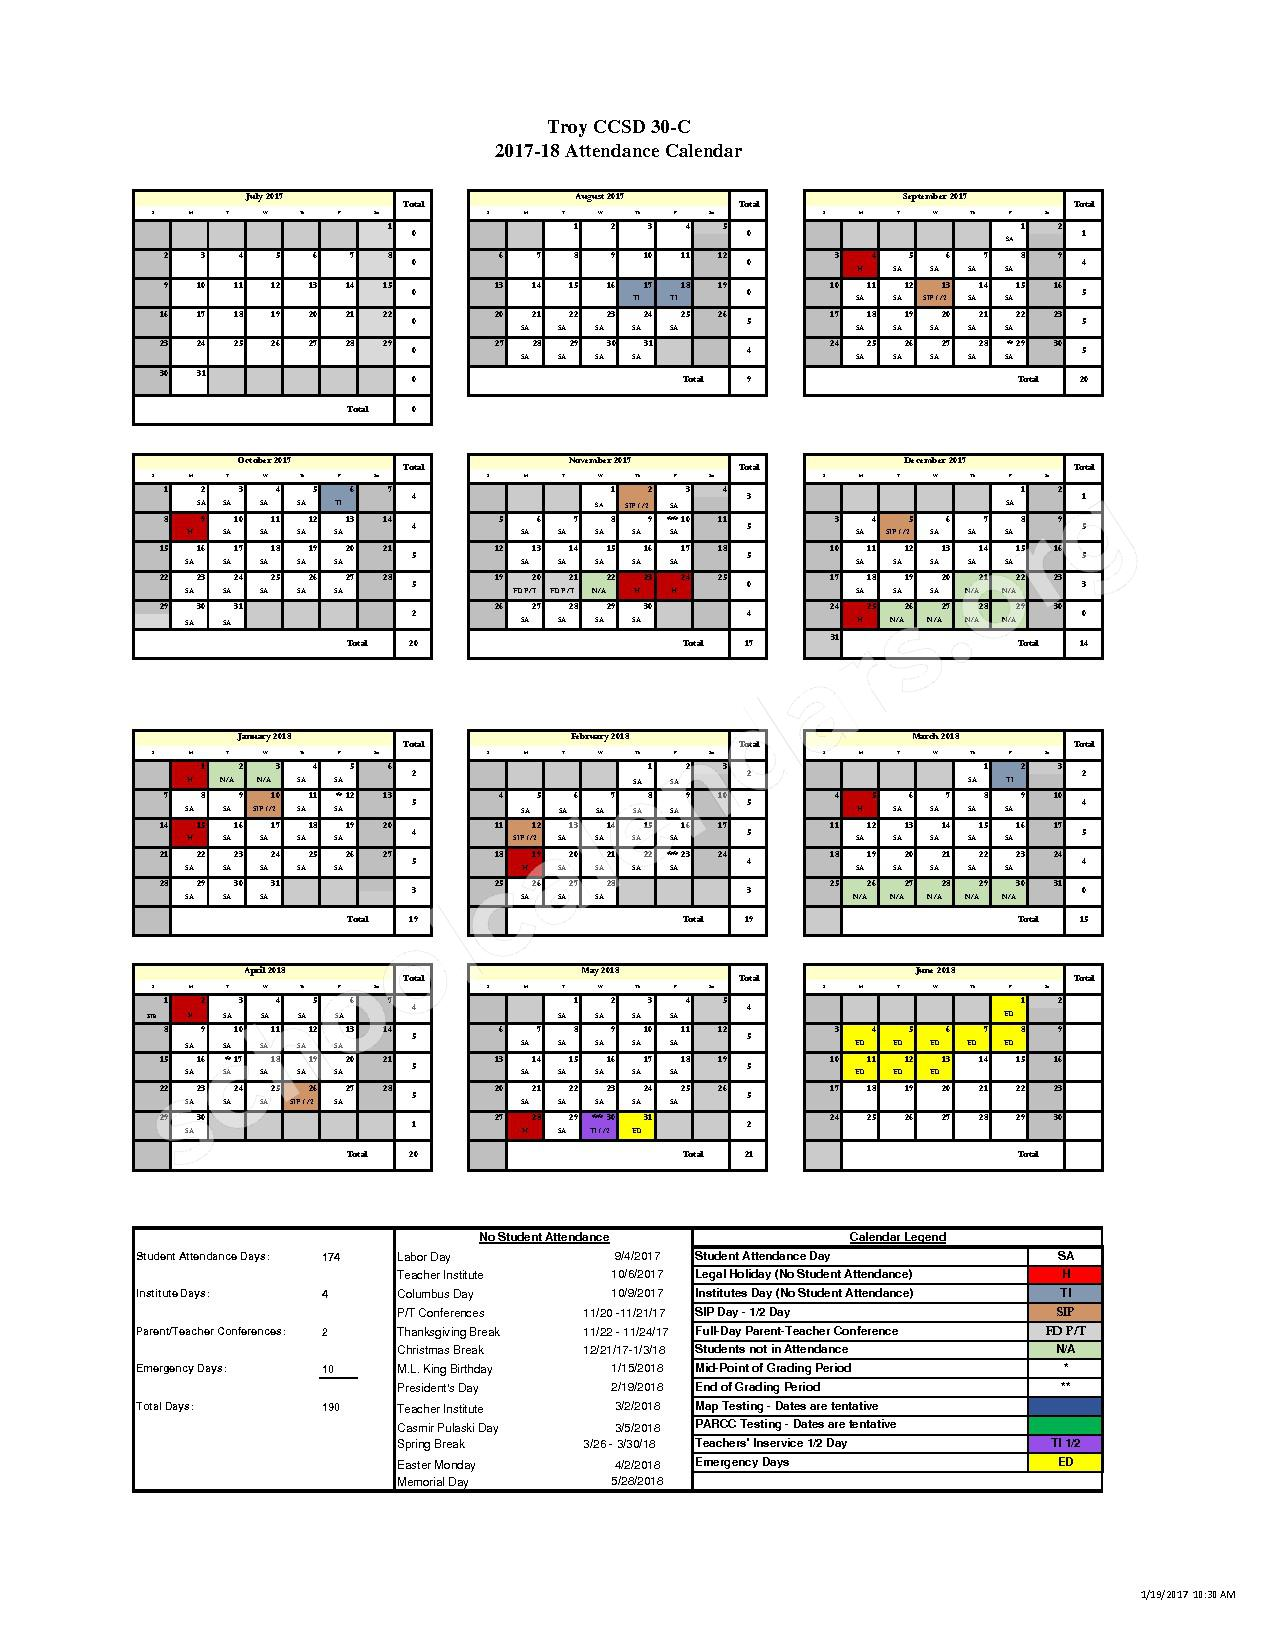 2017 - 2018 School Calendar – Troy Community Consolidated School District 30-C – page 1